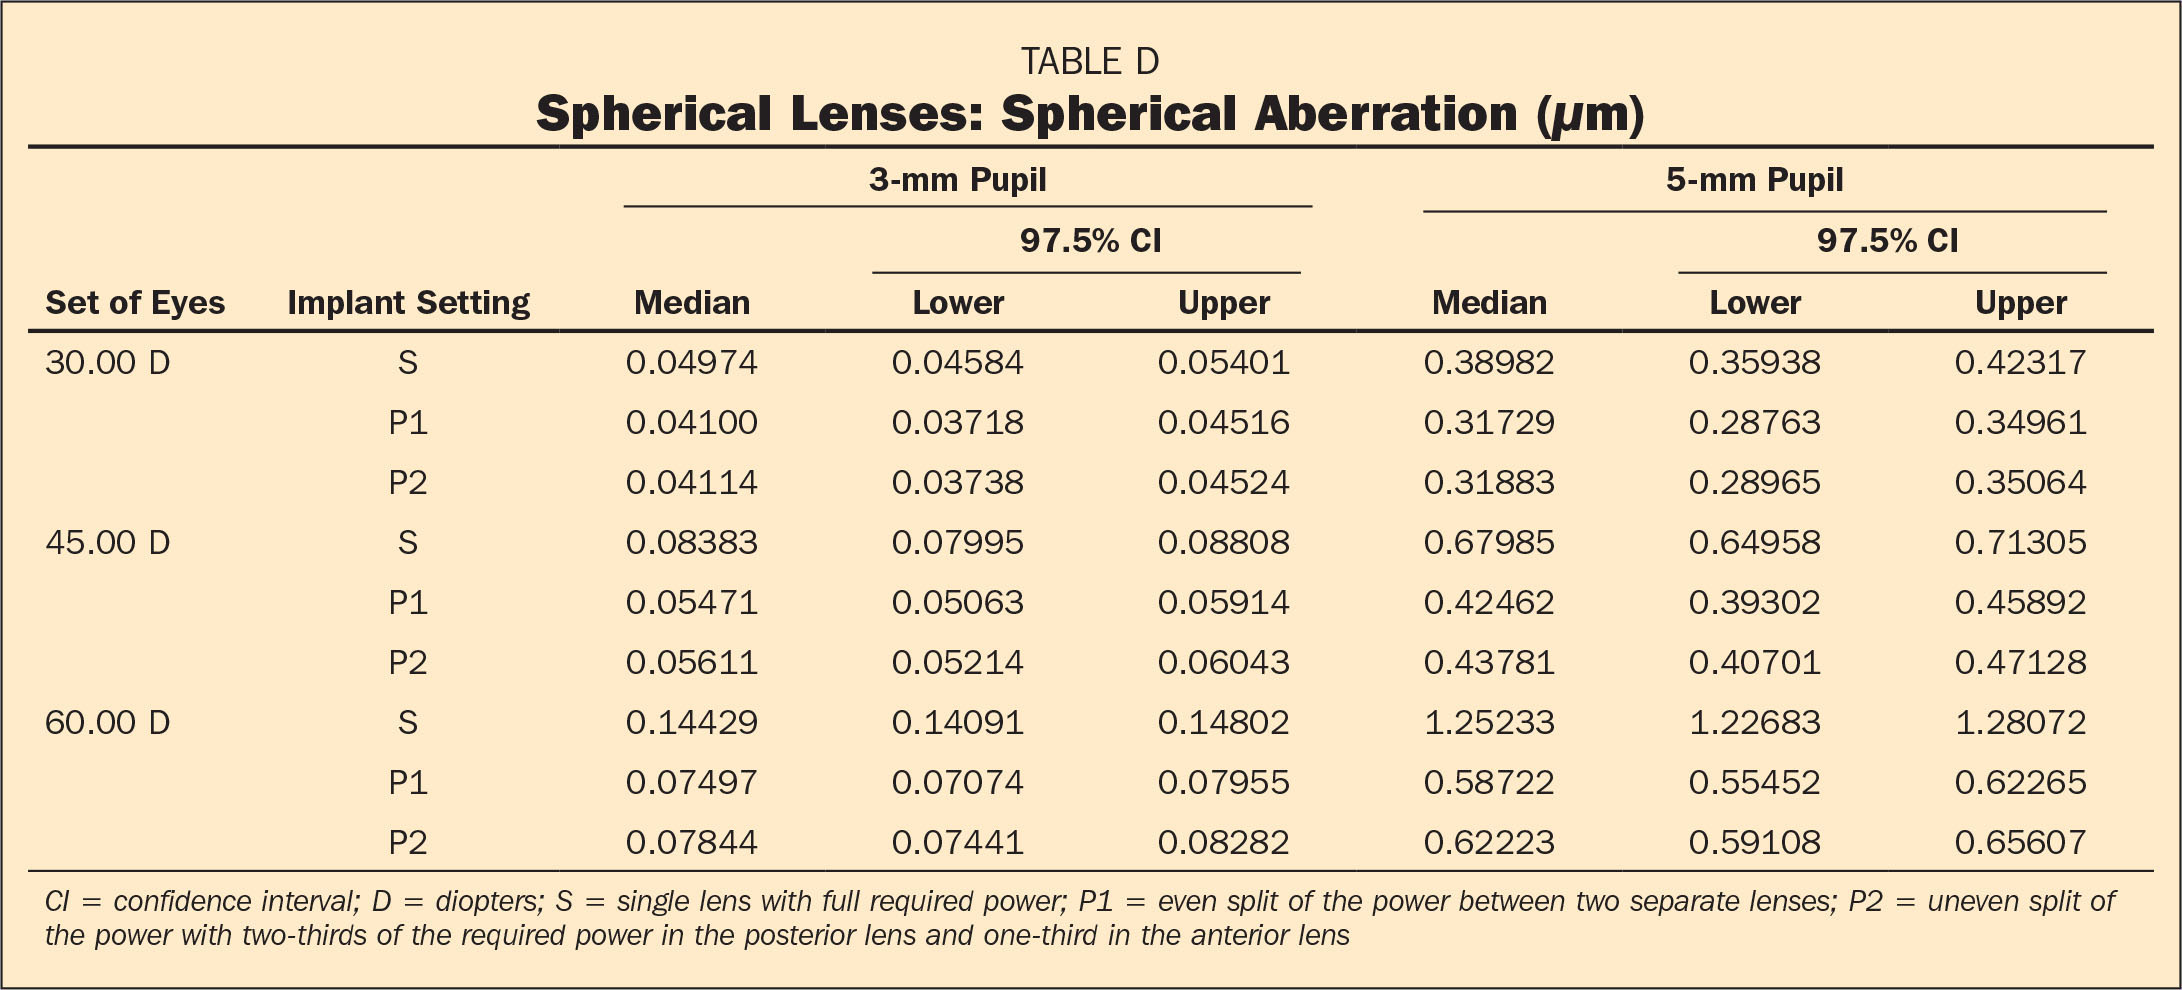 Spherical Lenses: Spherical Aberration (µm)